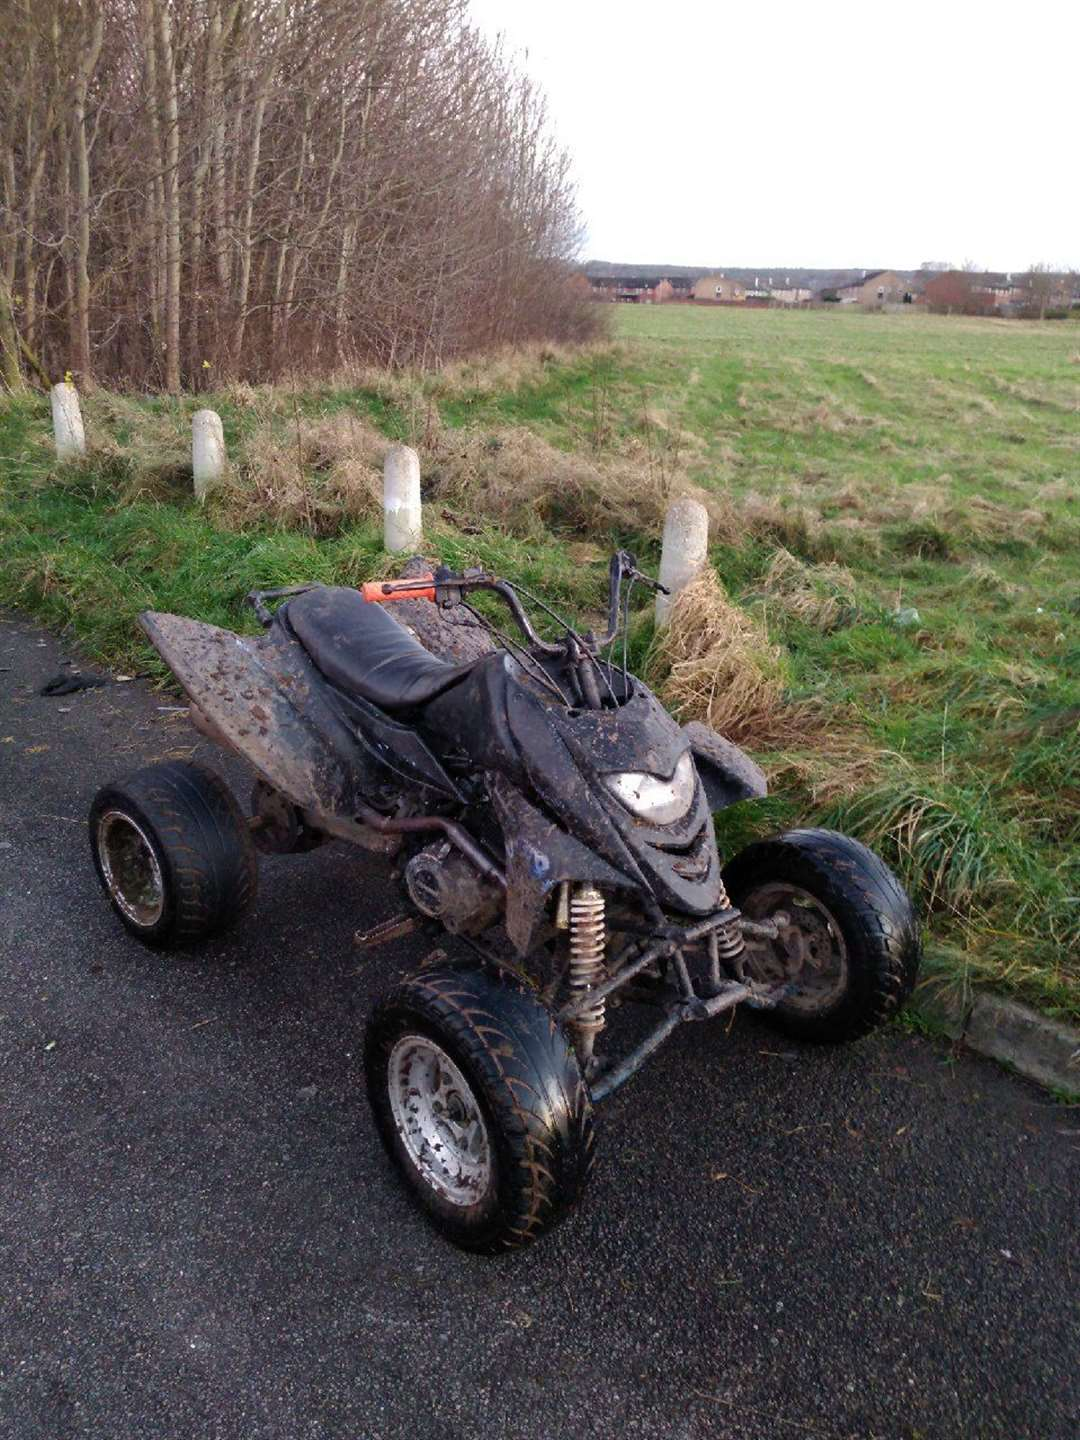 The quad bike suspected to be stolen. (43641982)